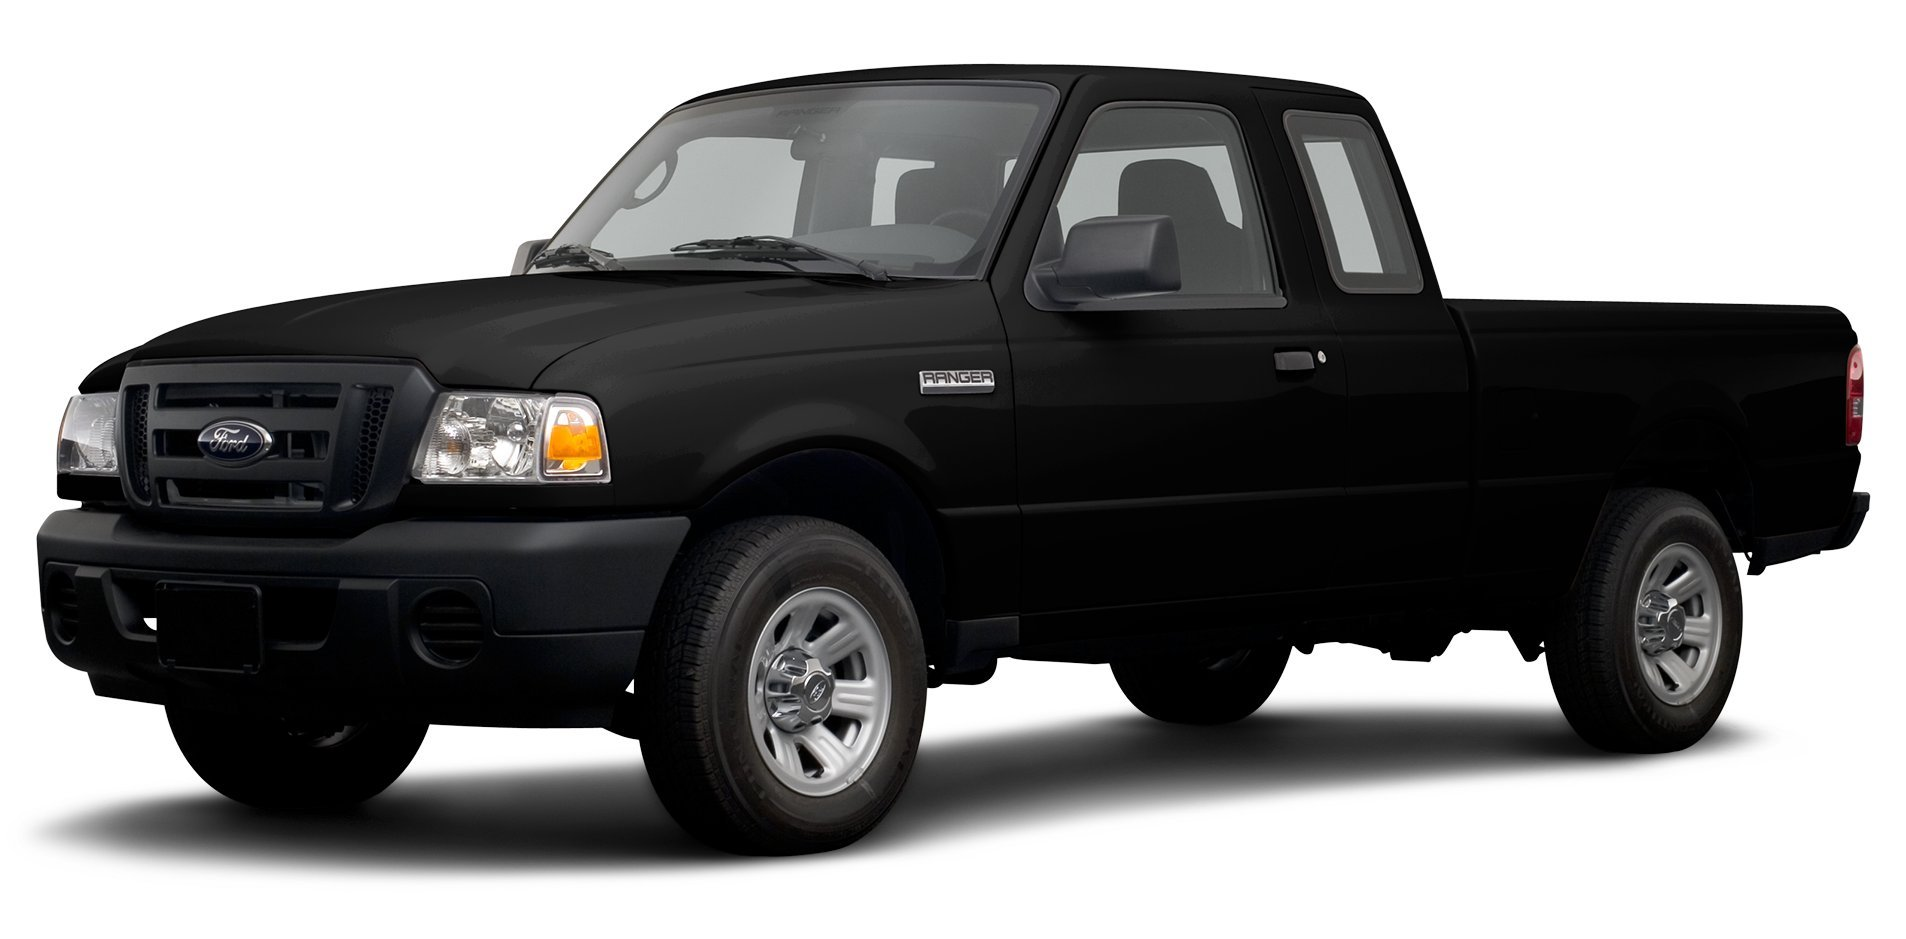 2008 ford ranger fx4 off road 4 wheel drive 2 door supercab